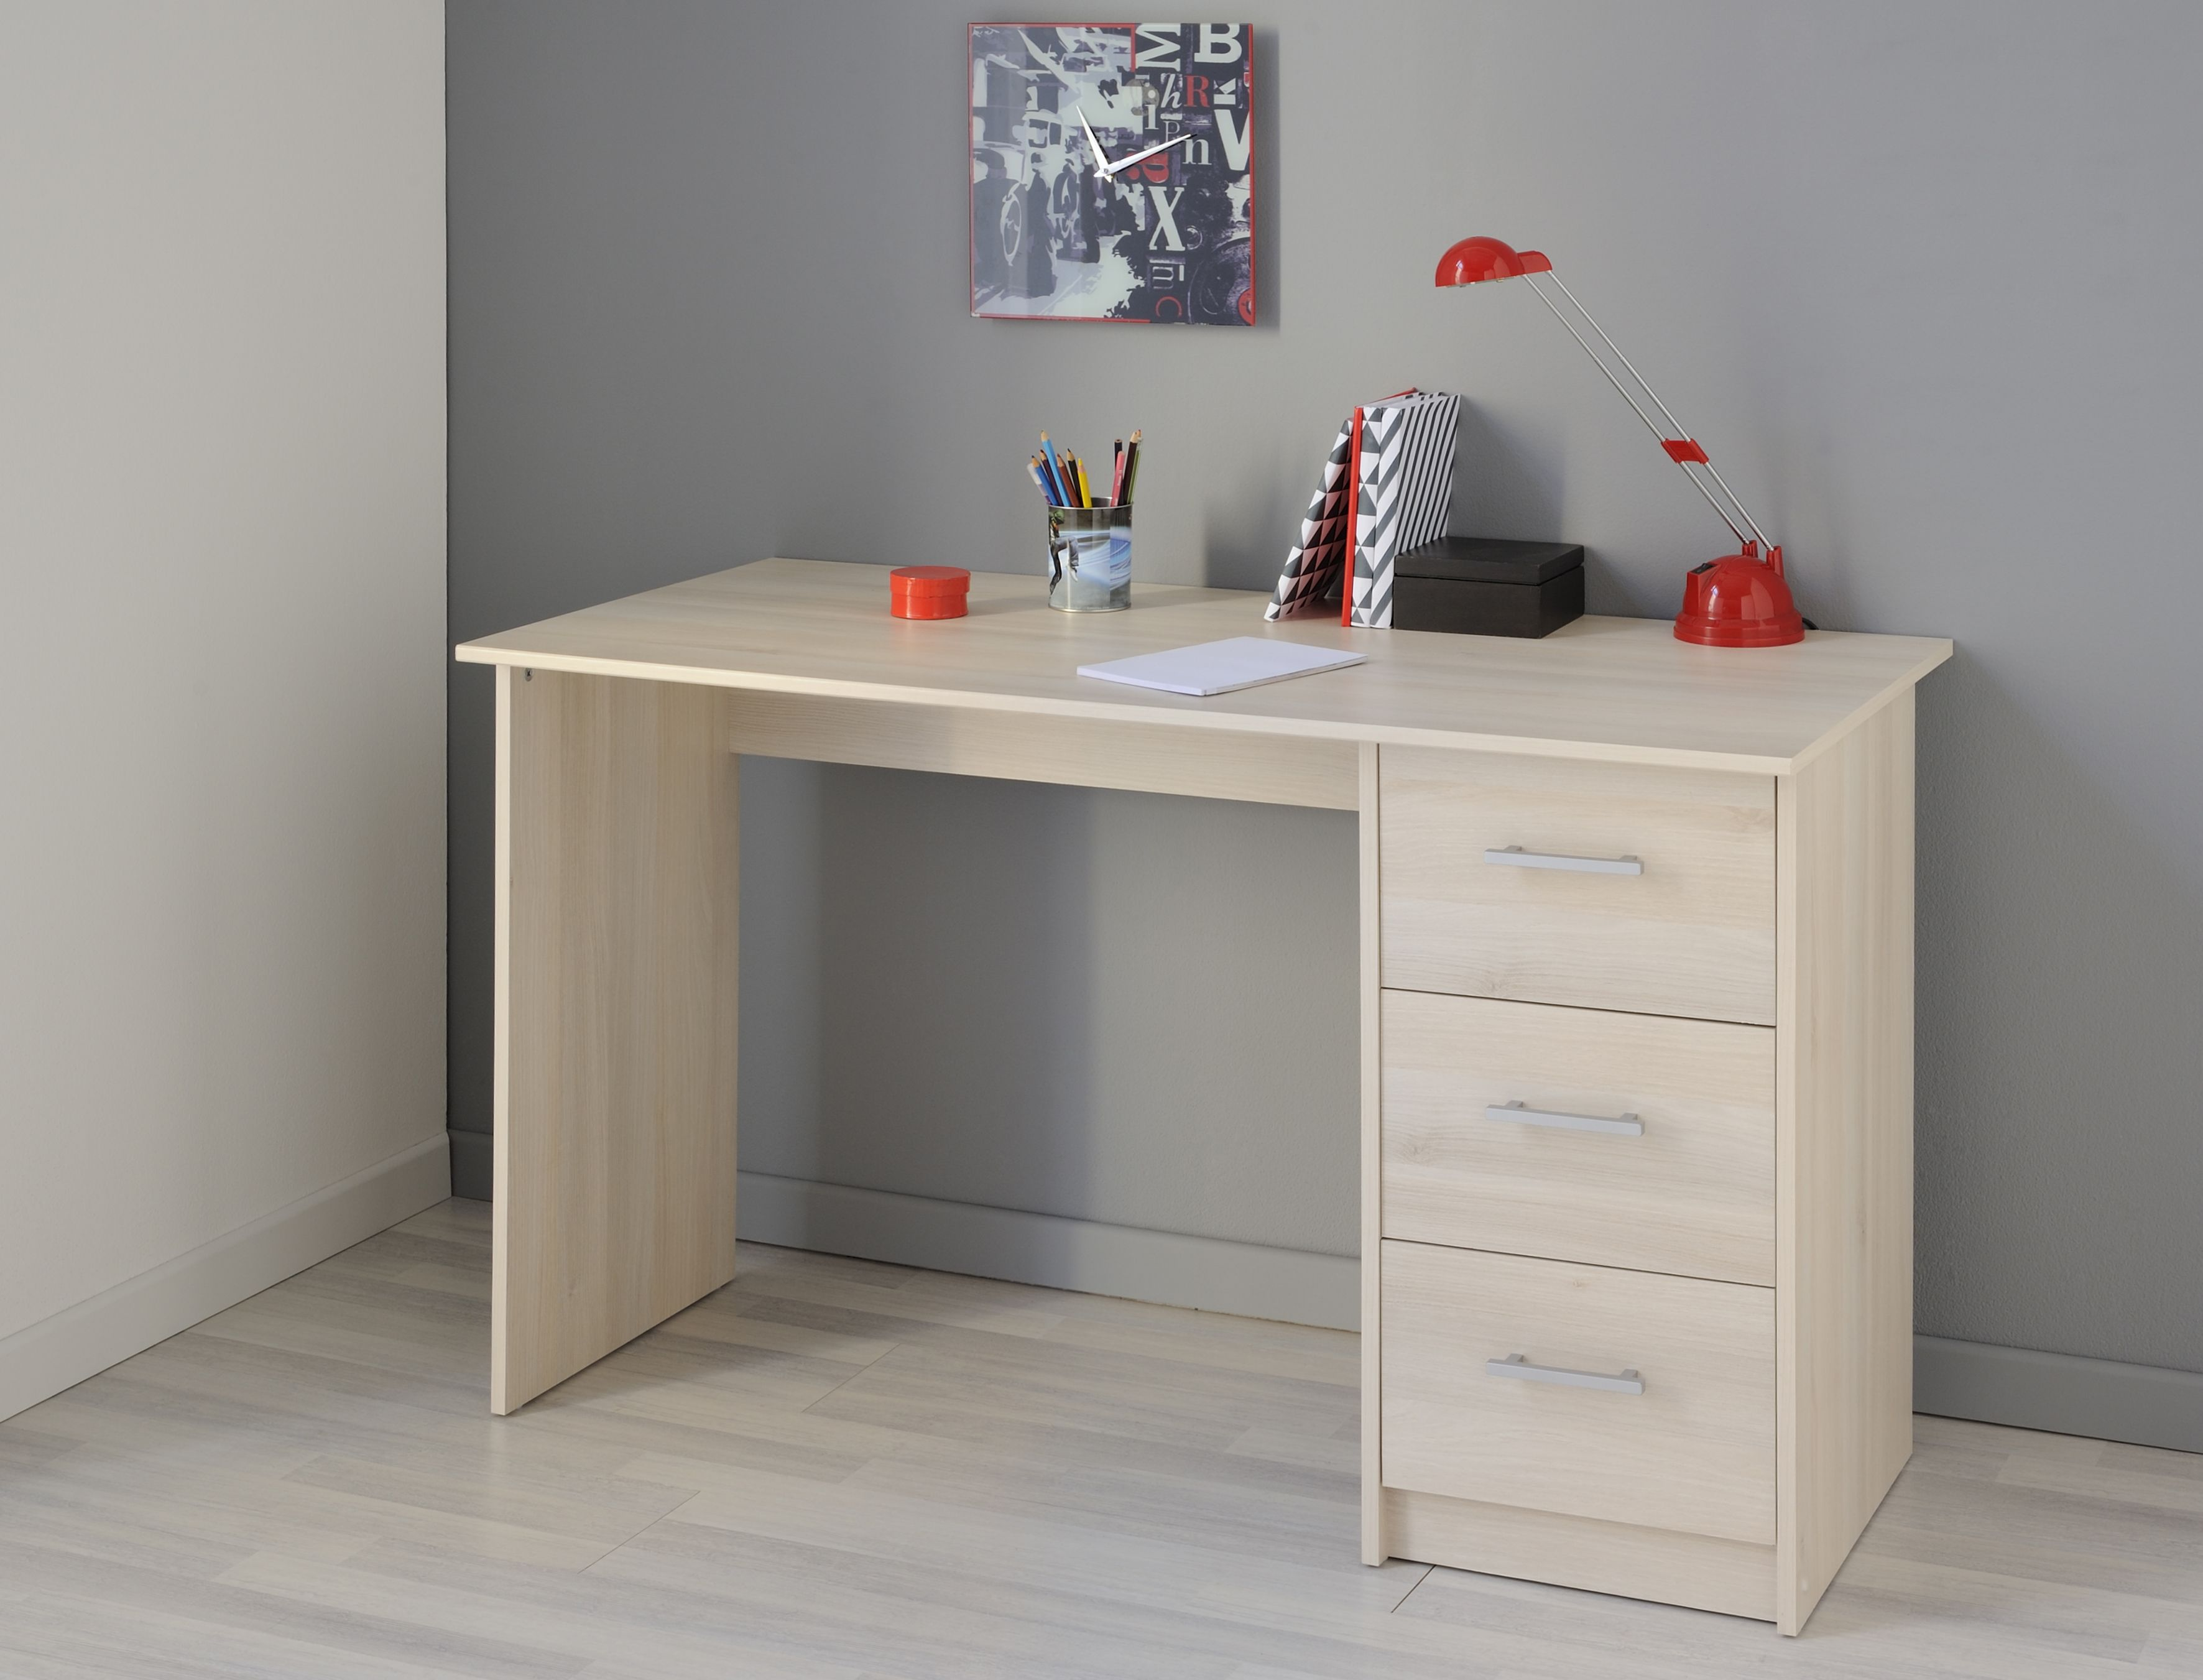 Infinity Desk For Kids Light Acacia Homwork Study Pictures Gallery